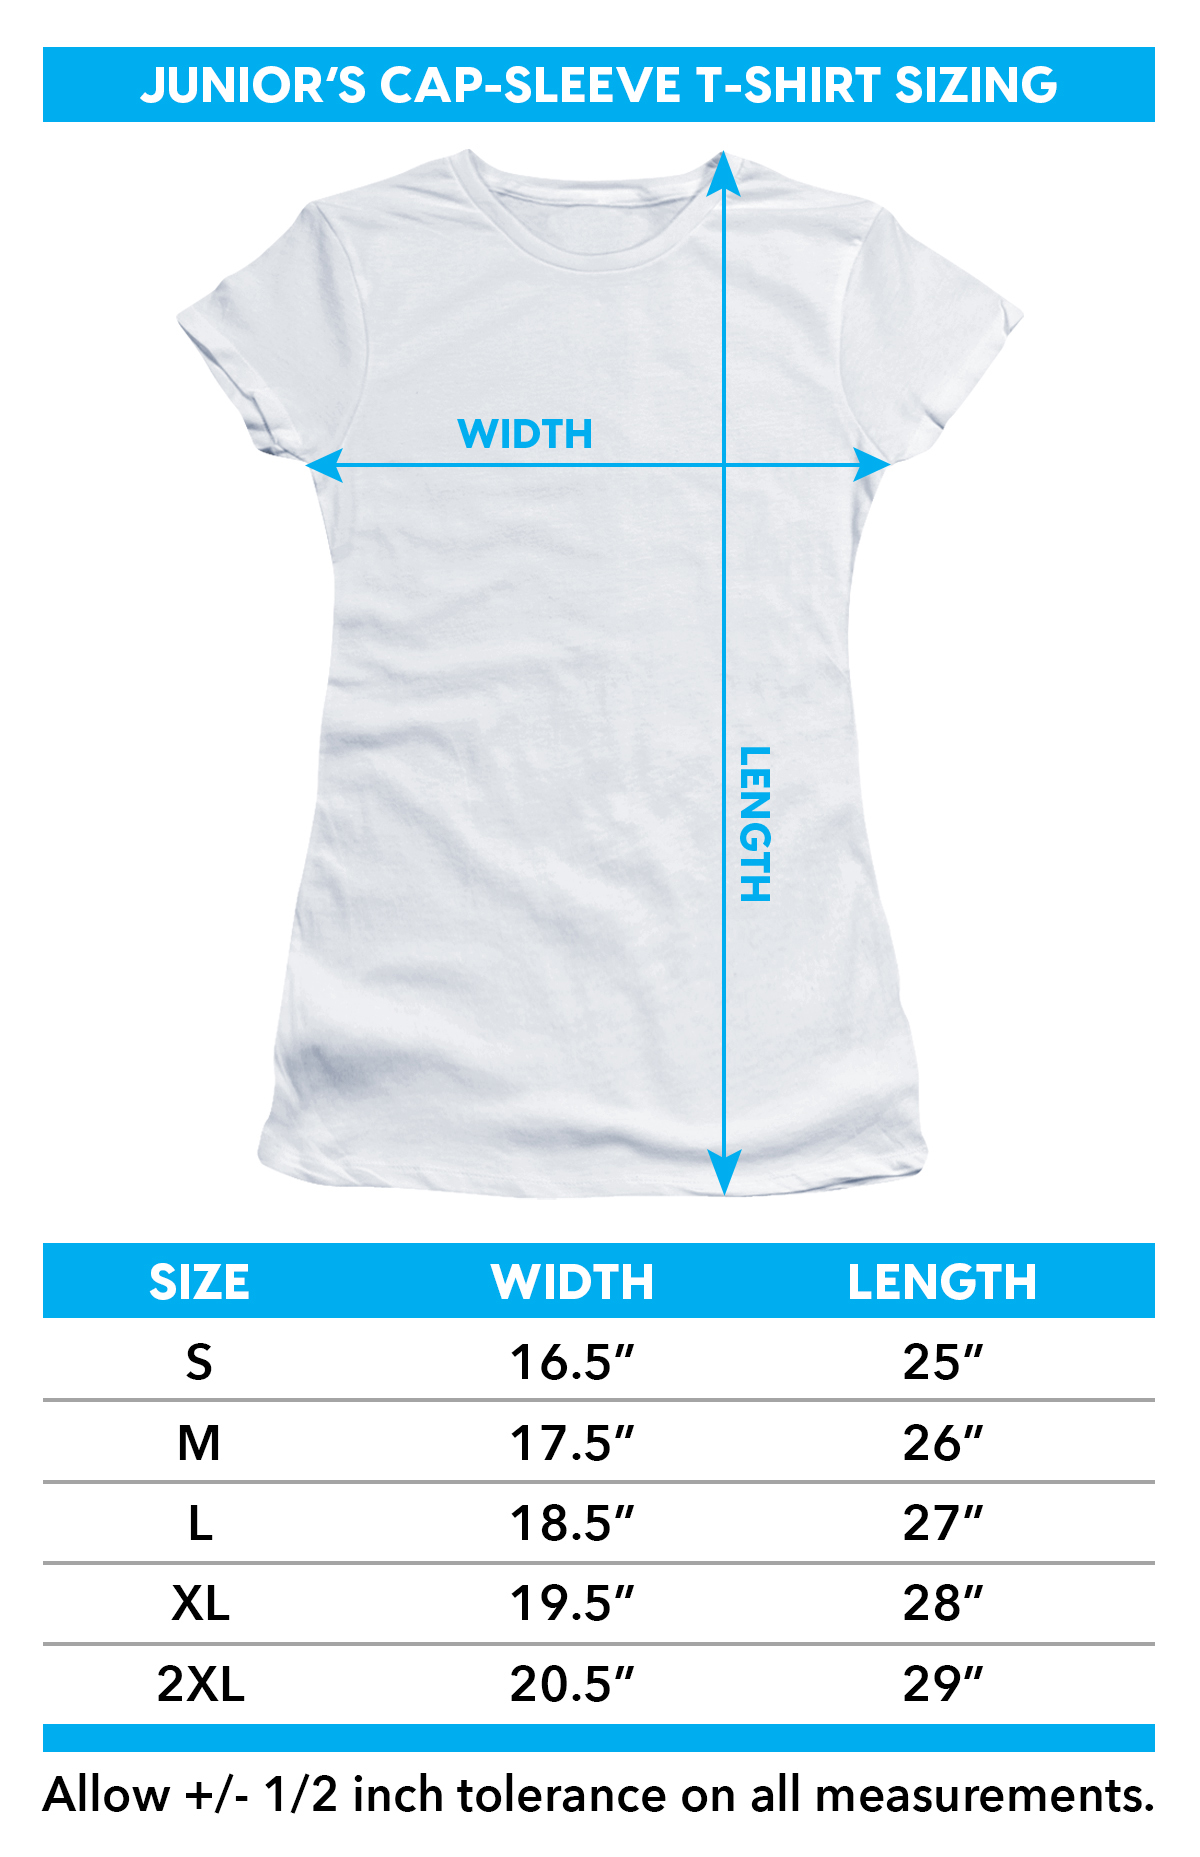 Girls sizing chart for Mr. Potato Head Girls T-Shirt - Identity Crisis TRV-HBRO255-JS